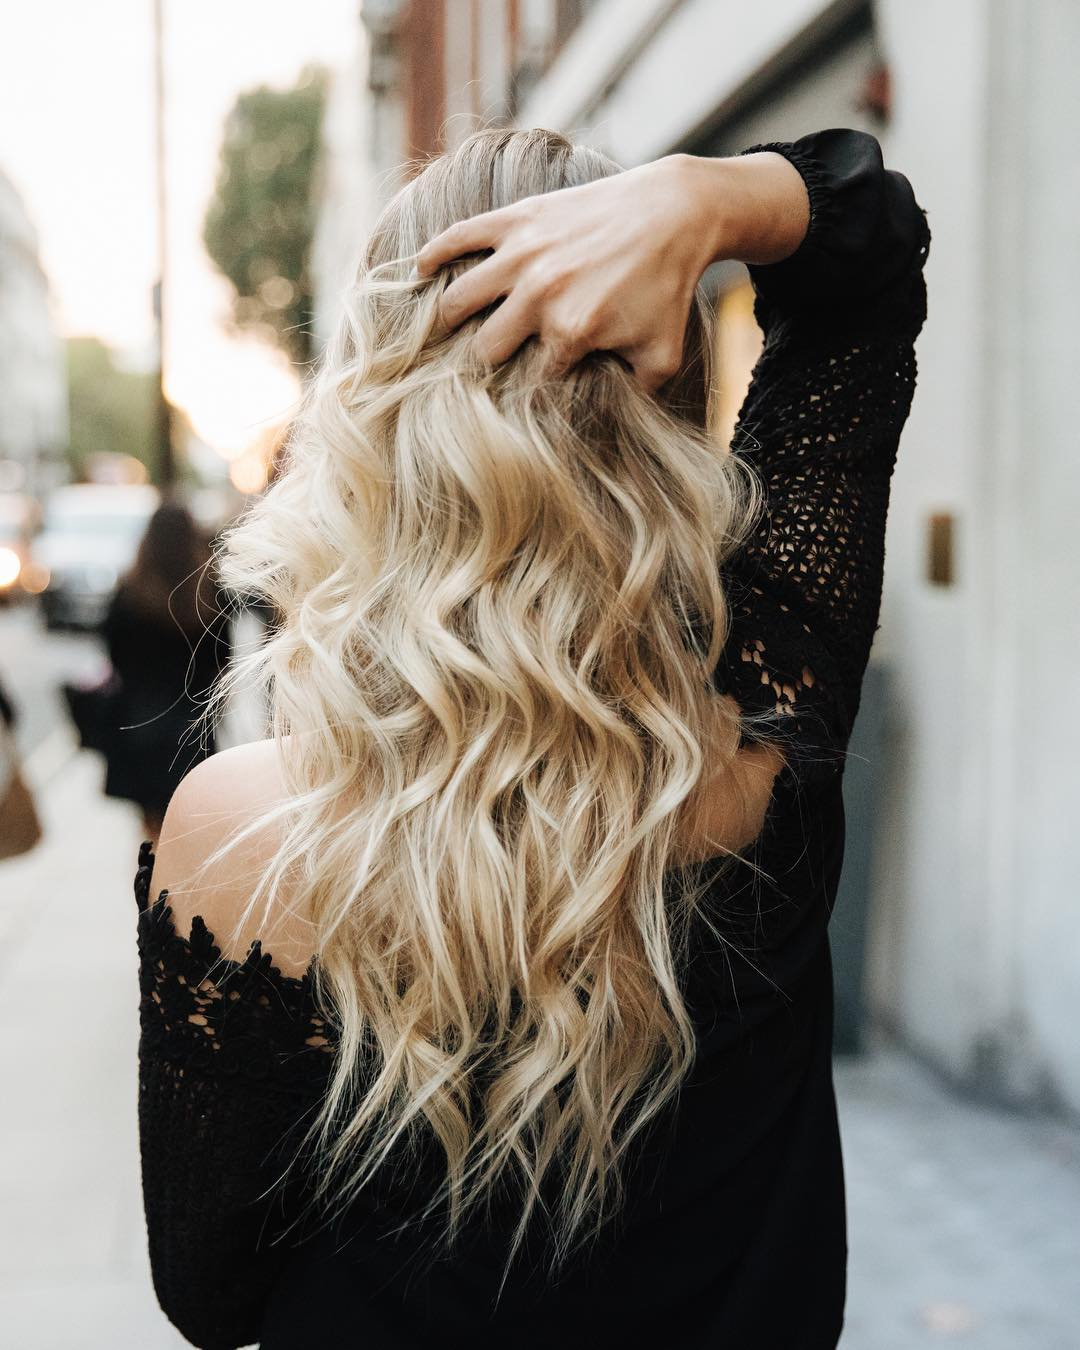 Discussion on this topic: The best London blow-dry bars, the-best-london-blow-dry-bars/